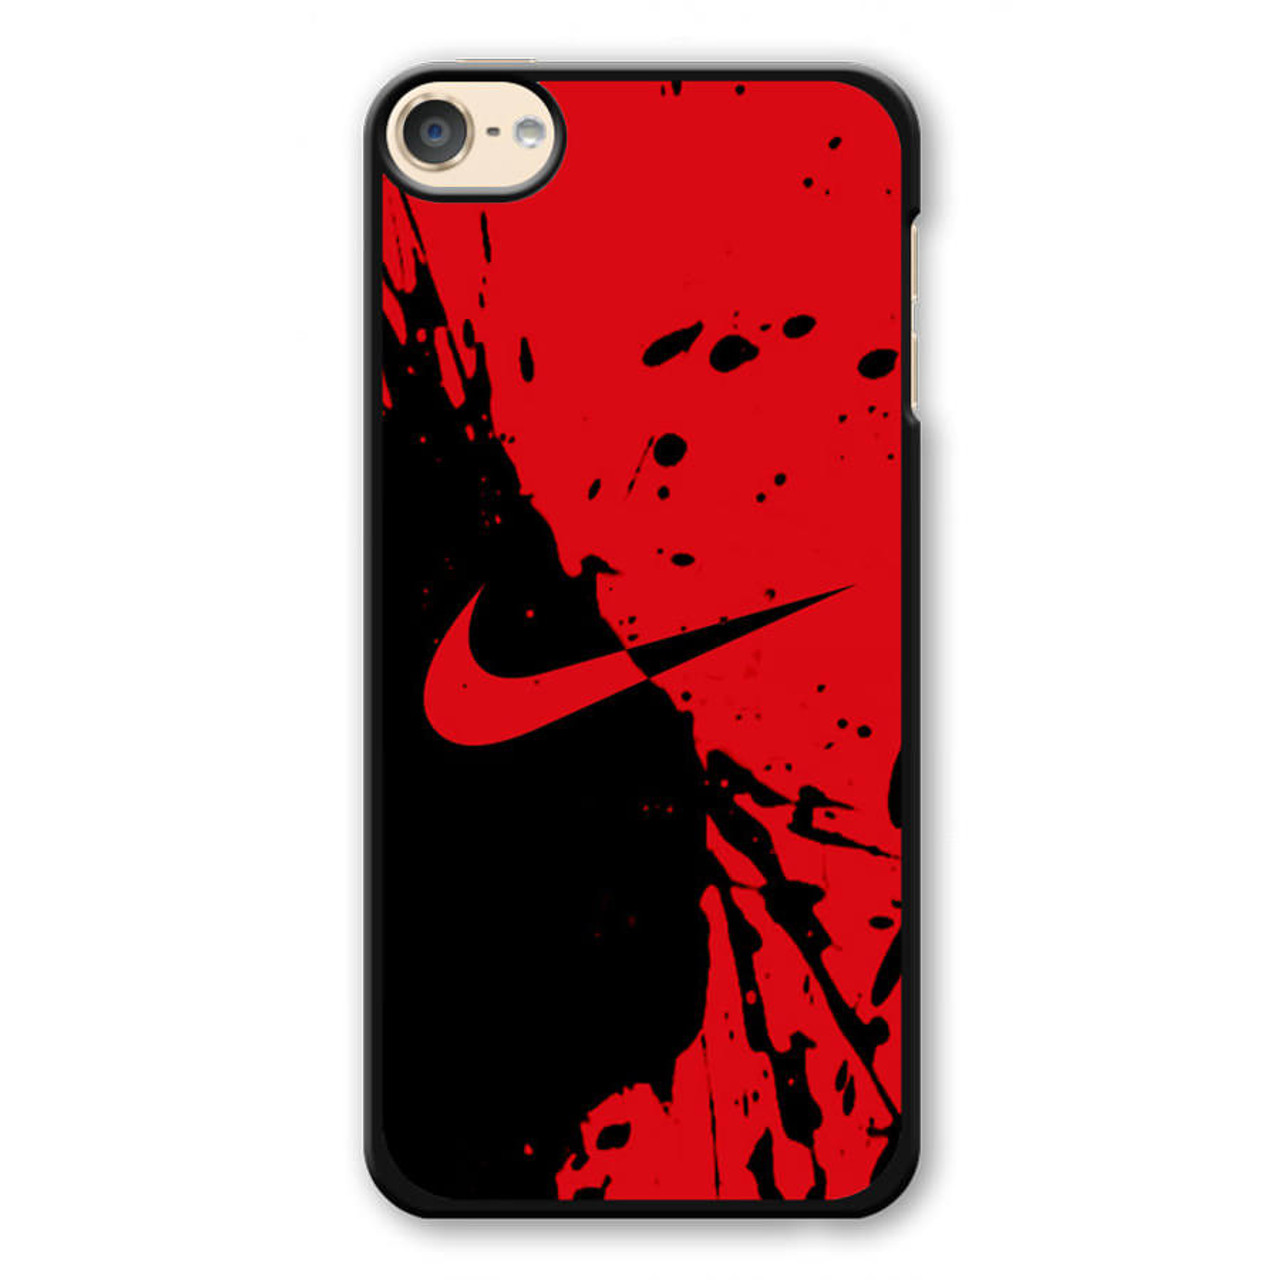 Red Case Iphone